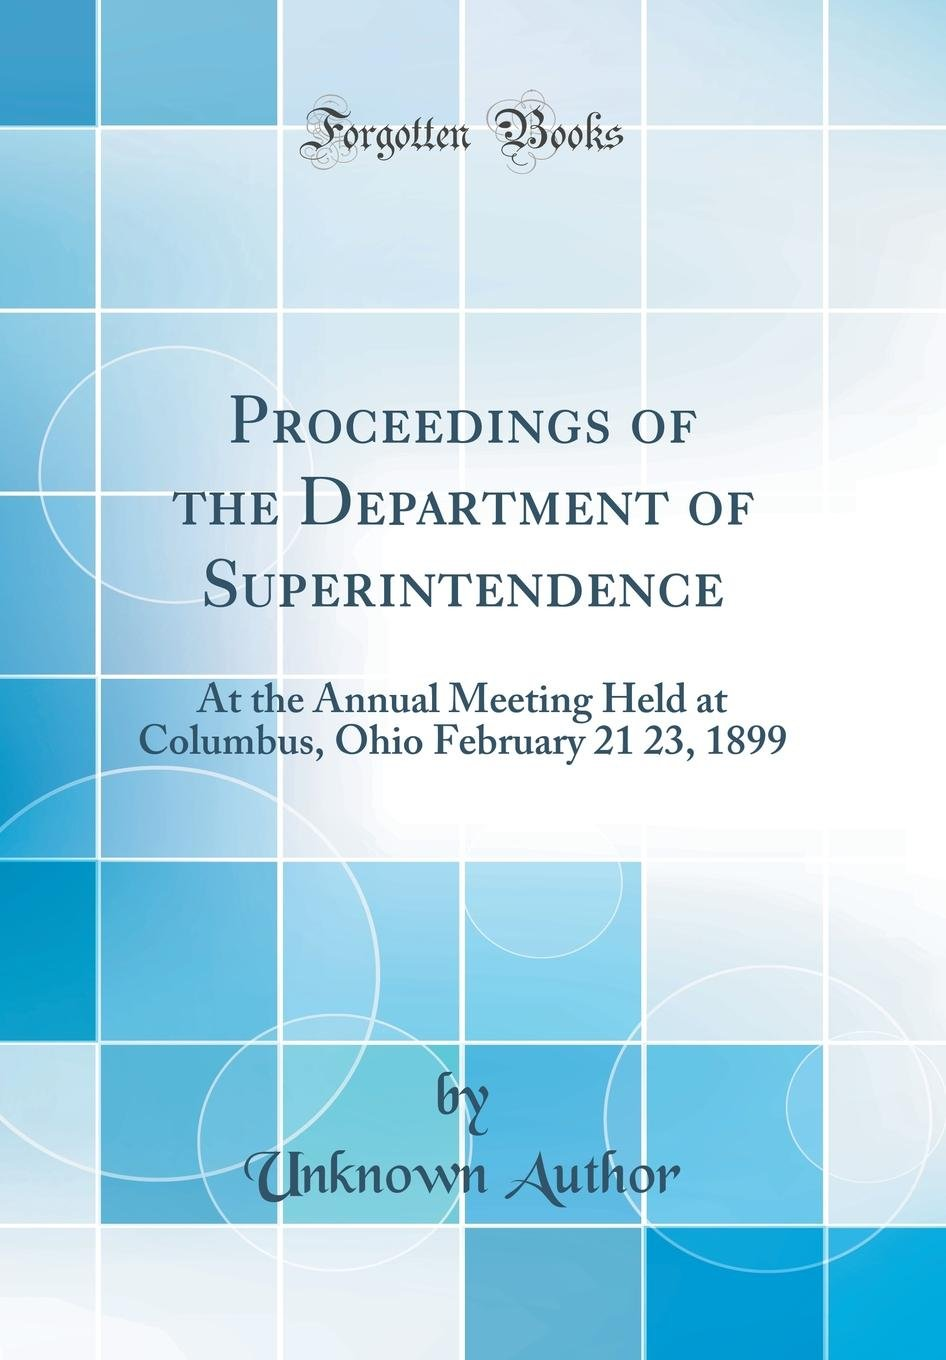 Proceedings of the Department of Superintendence: At the Annual Meeting Held at Columbus, Ohio February 21 23, 1899 (Classic Reprint) PDF